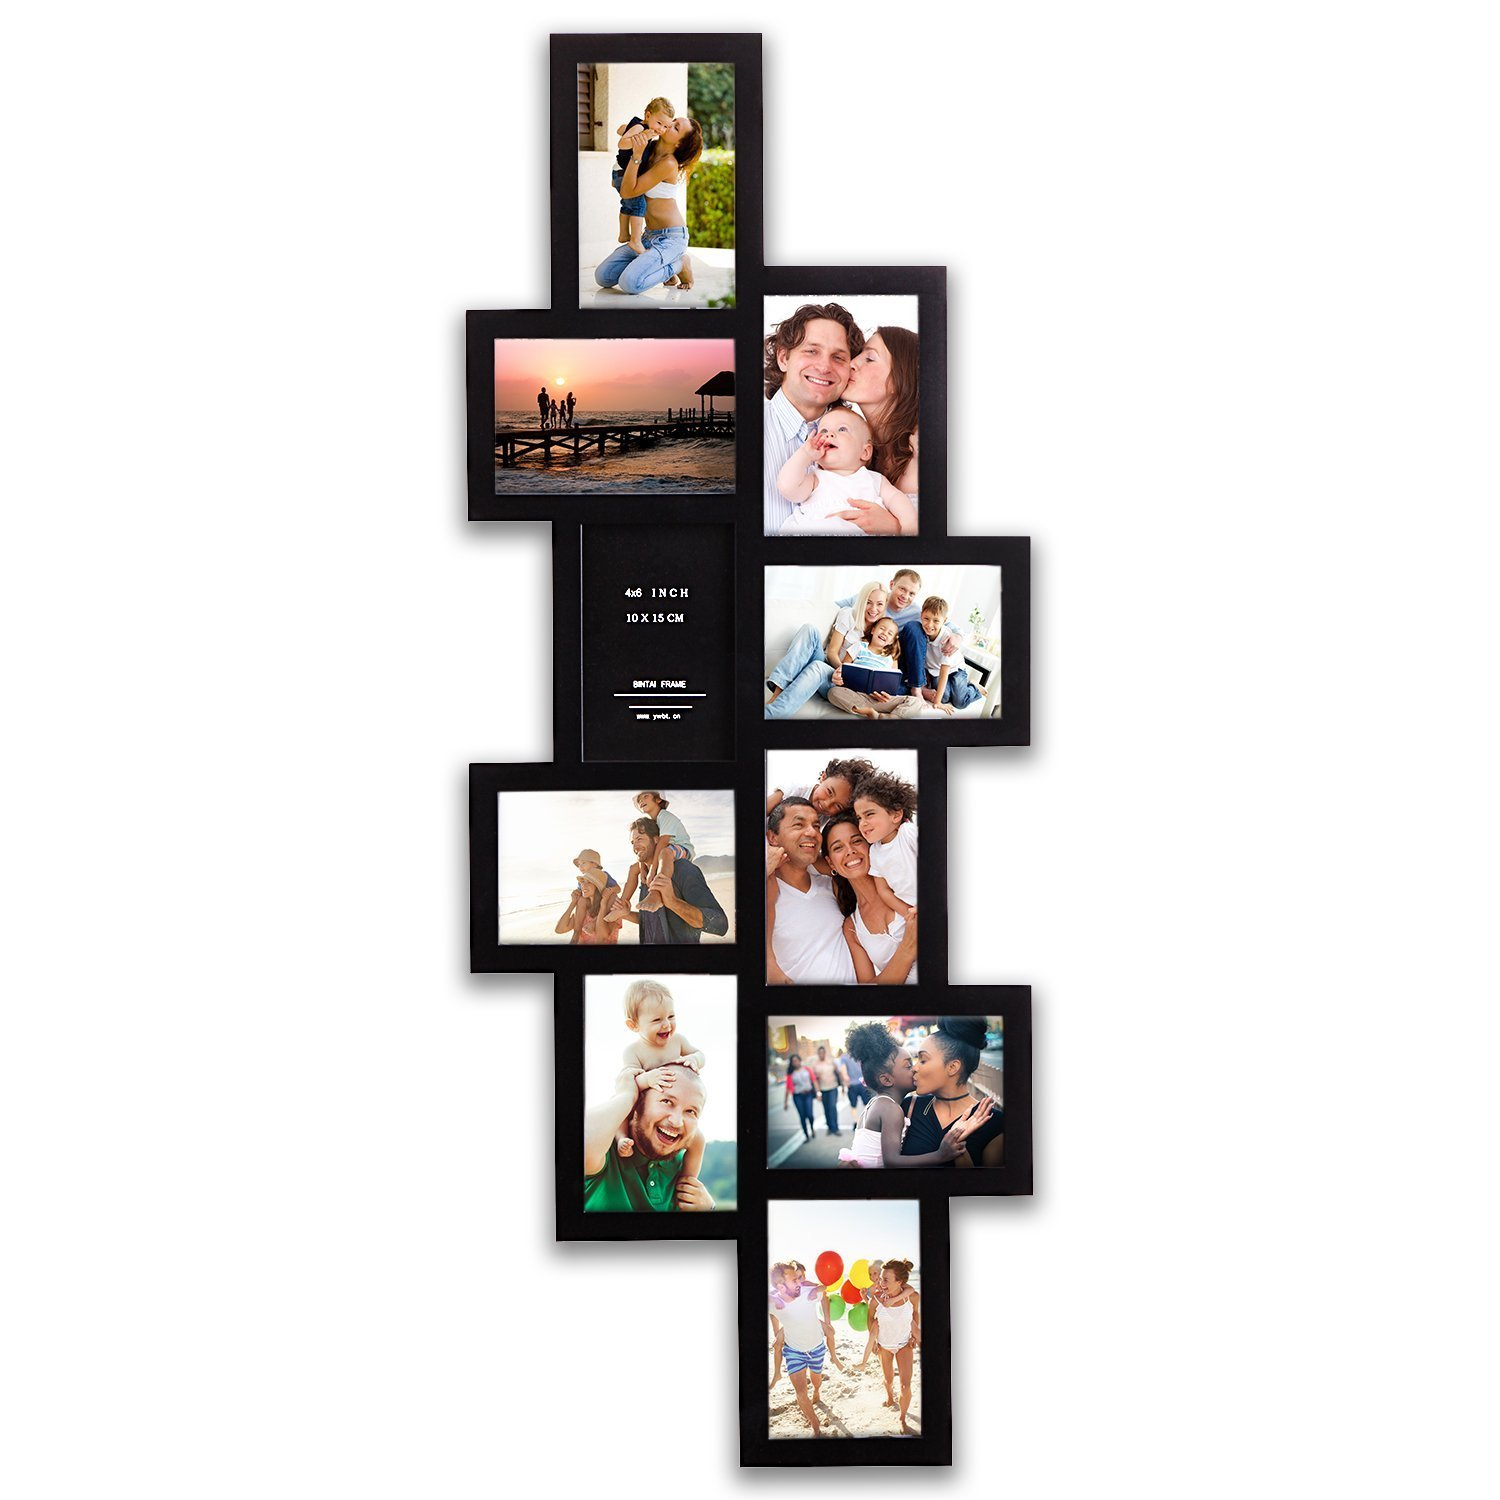 Hello Laura - 33 by 13.5'' inch Wall Hanging Photo Frame, 4 x 6'' inch Photo Sockets x 10, 10 opening Black Frame Edge | Gallery Style by Hello Laura (Image #1)